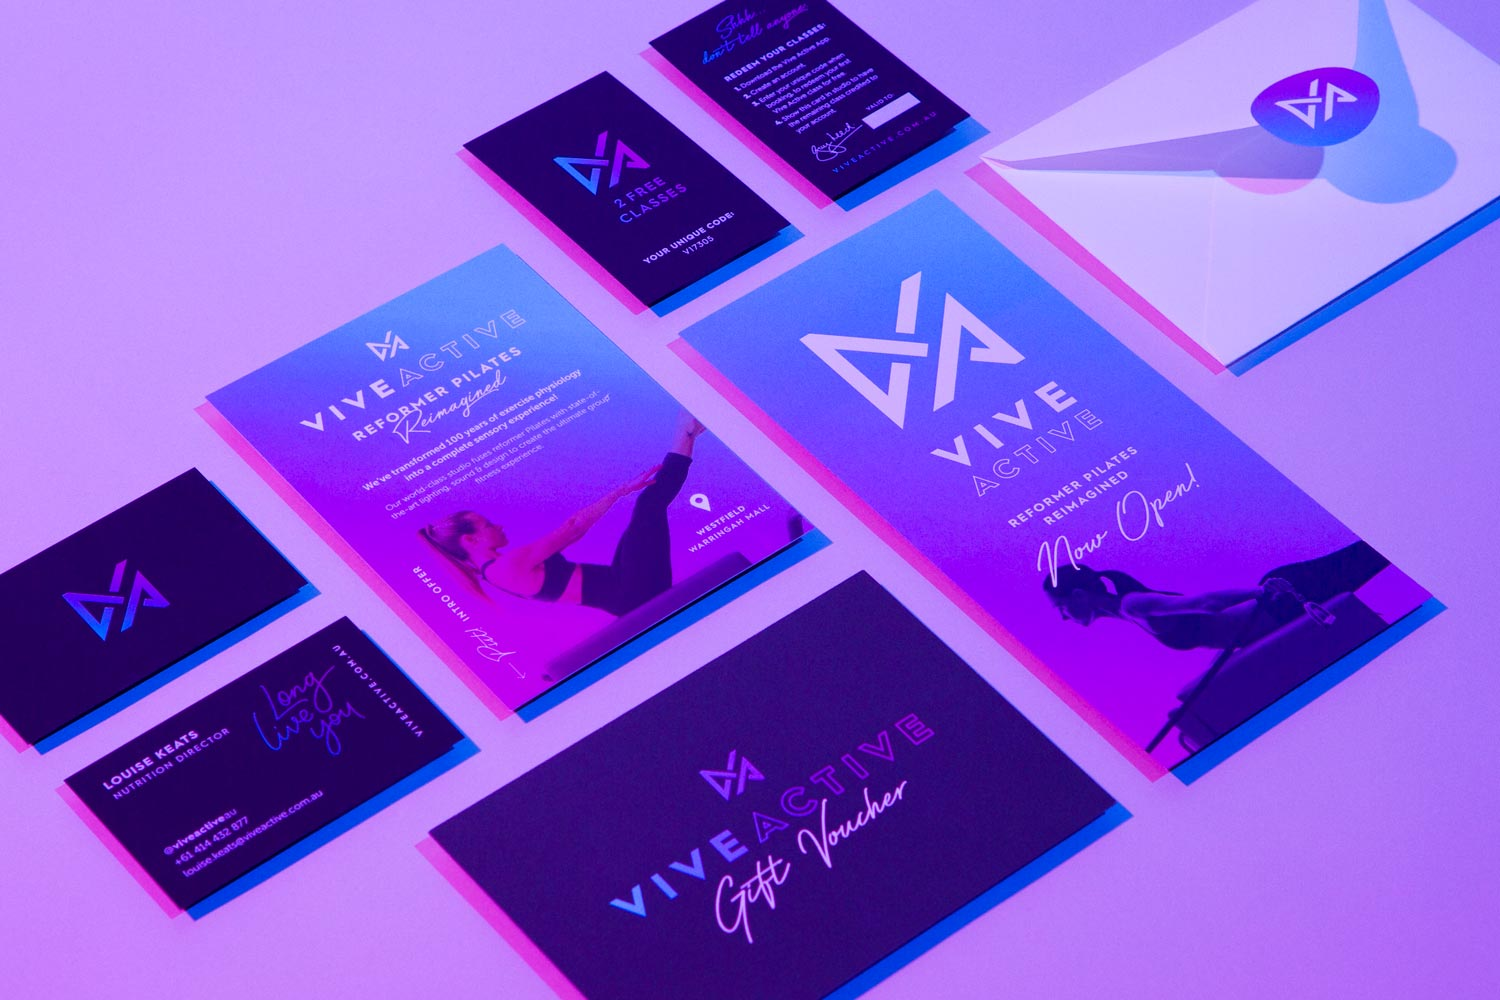 Print media design for Vive Active, including business cards, stationary and print marketing tools.